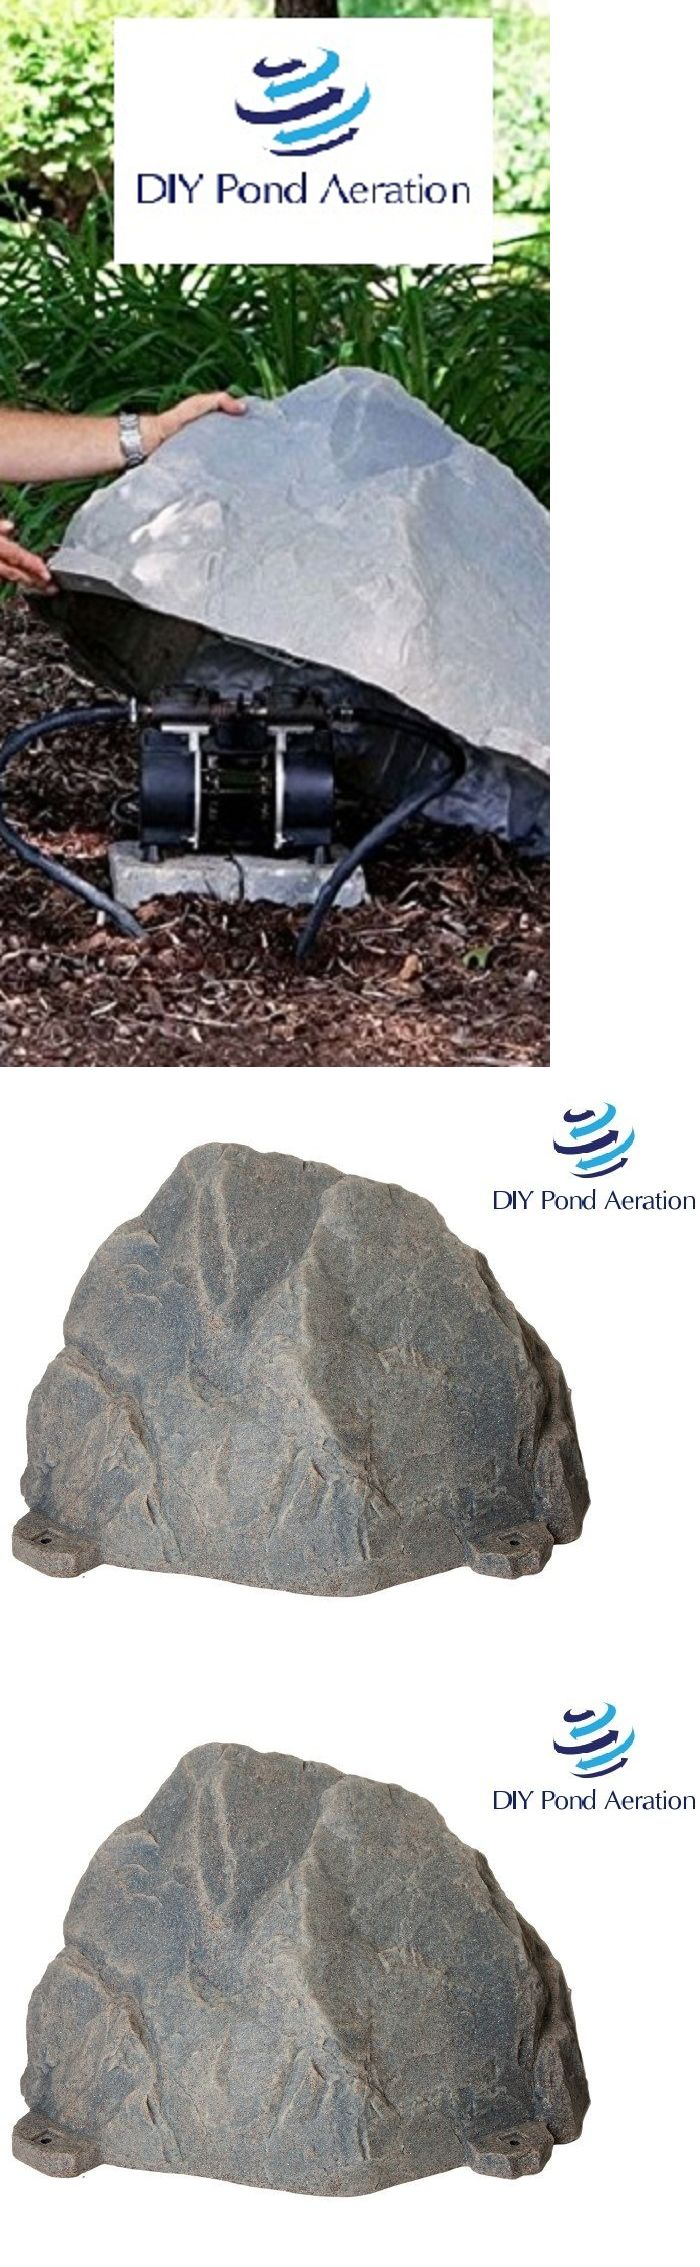 Fish Pond Supplies 134750: Artificial Rock Cover Enclosure For Pond Aerators Septic Pumps Aeration Motors -> BUY IT NOW ONLY: $218.99 on eBay!